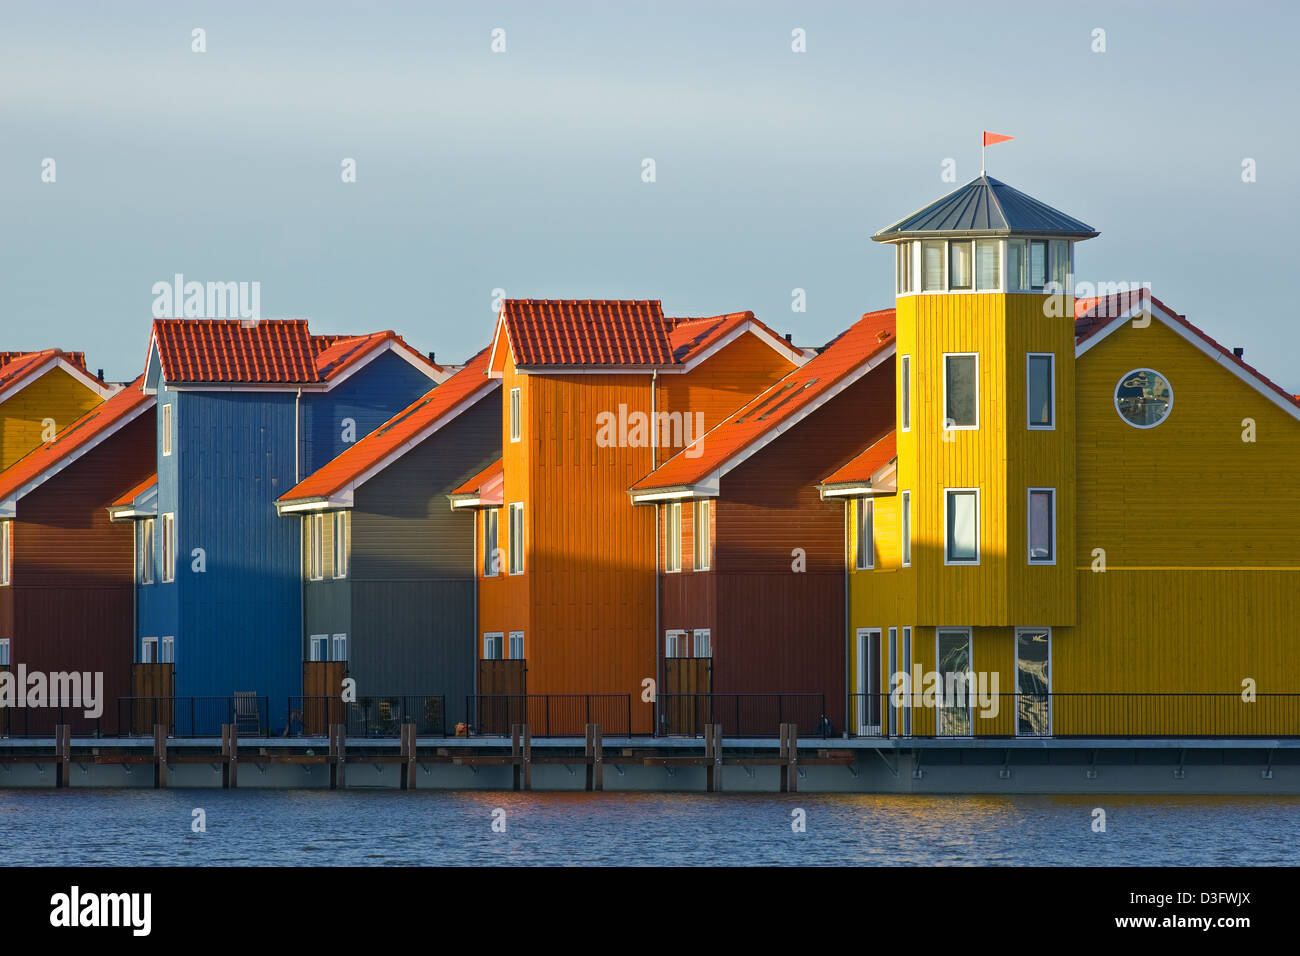 Colourful Houses At Reitdiephaven Groningen Netherlands Stock